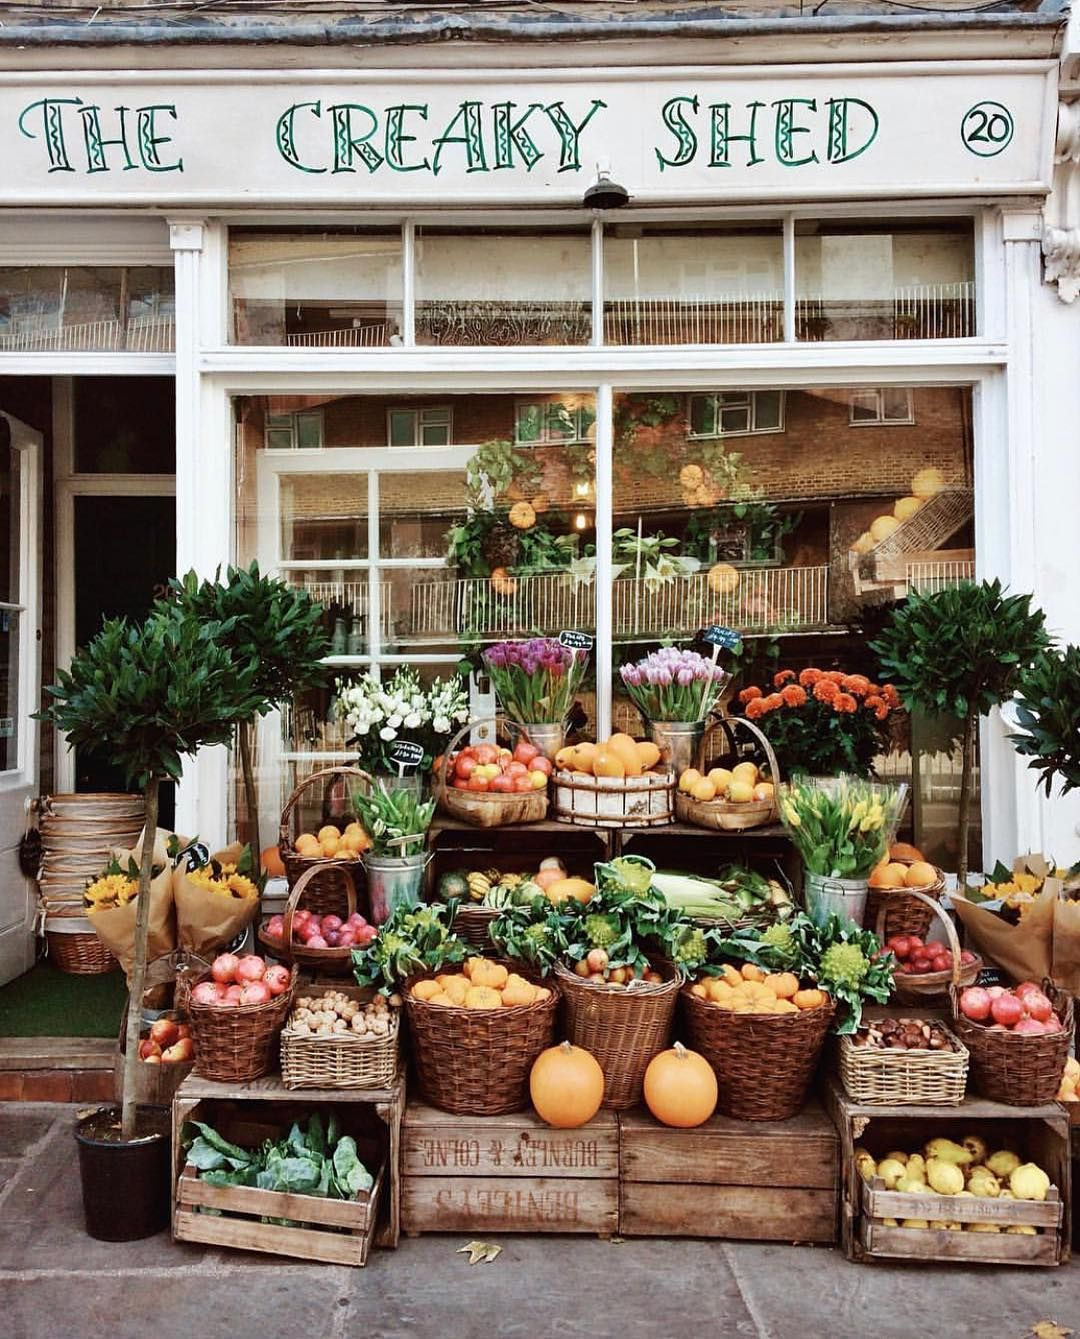 The Shopkeepers The Shopkeepers The Creaky Shed London Fruit Smoothie Popsicles Food Shop Farmers Market Recipes